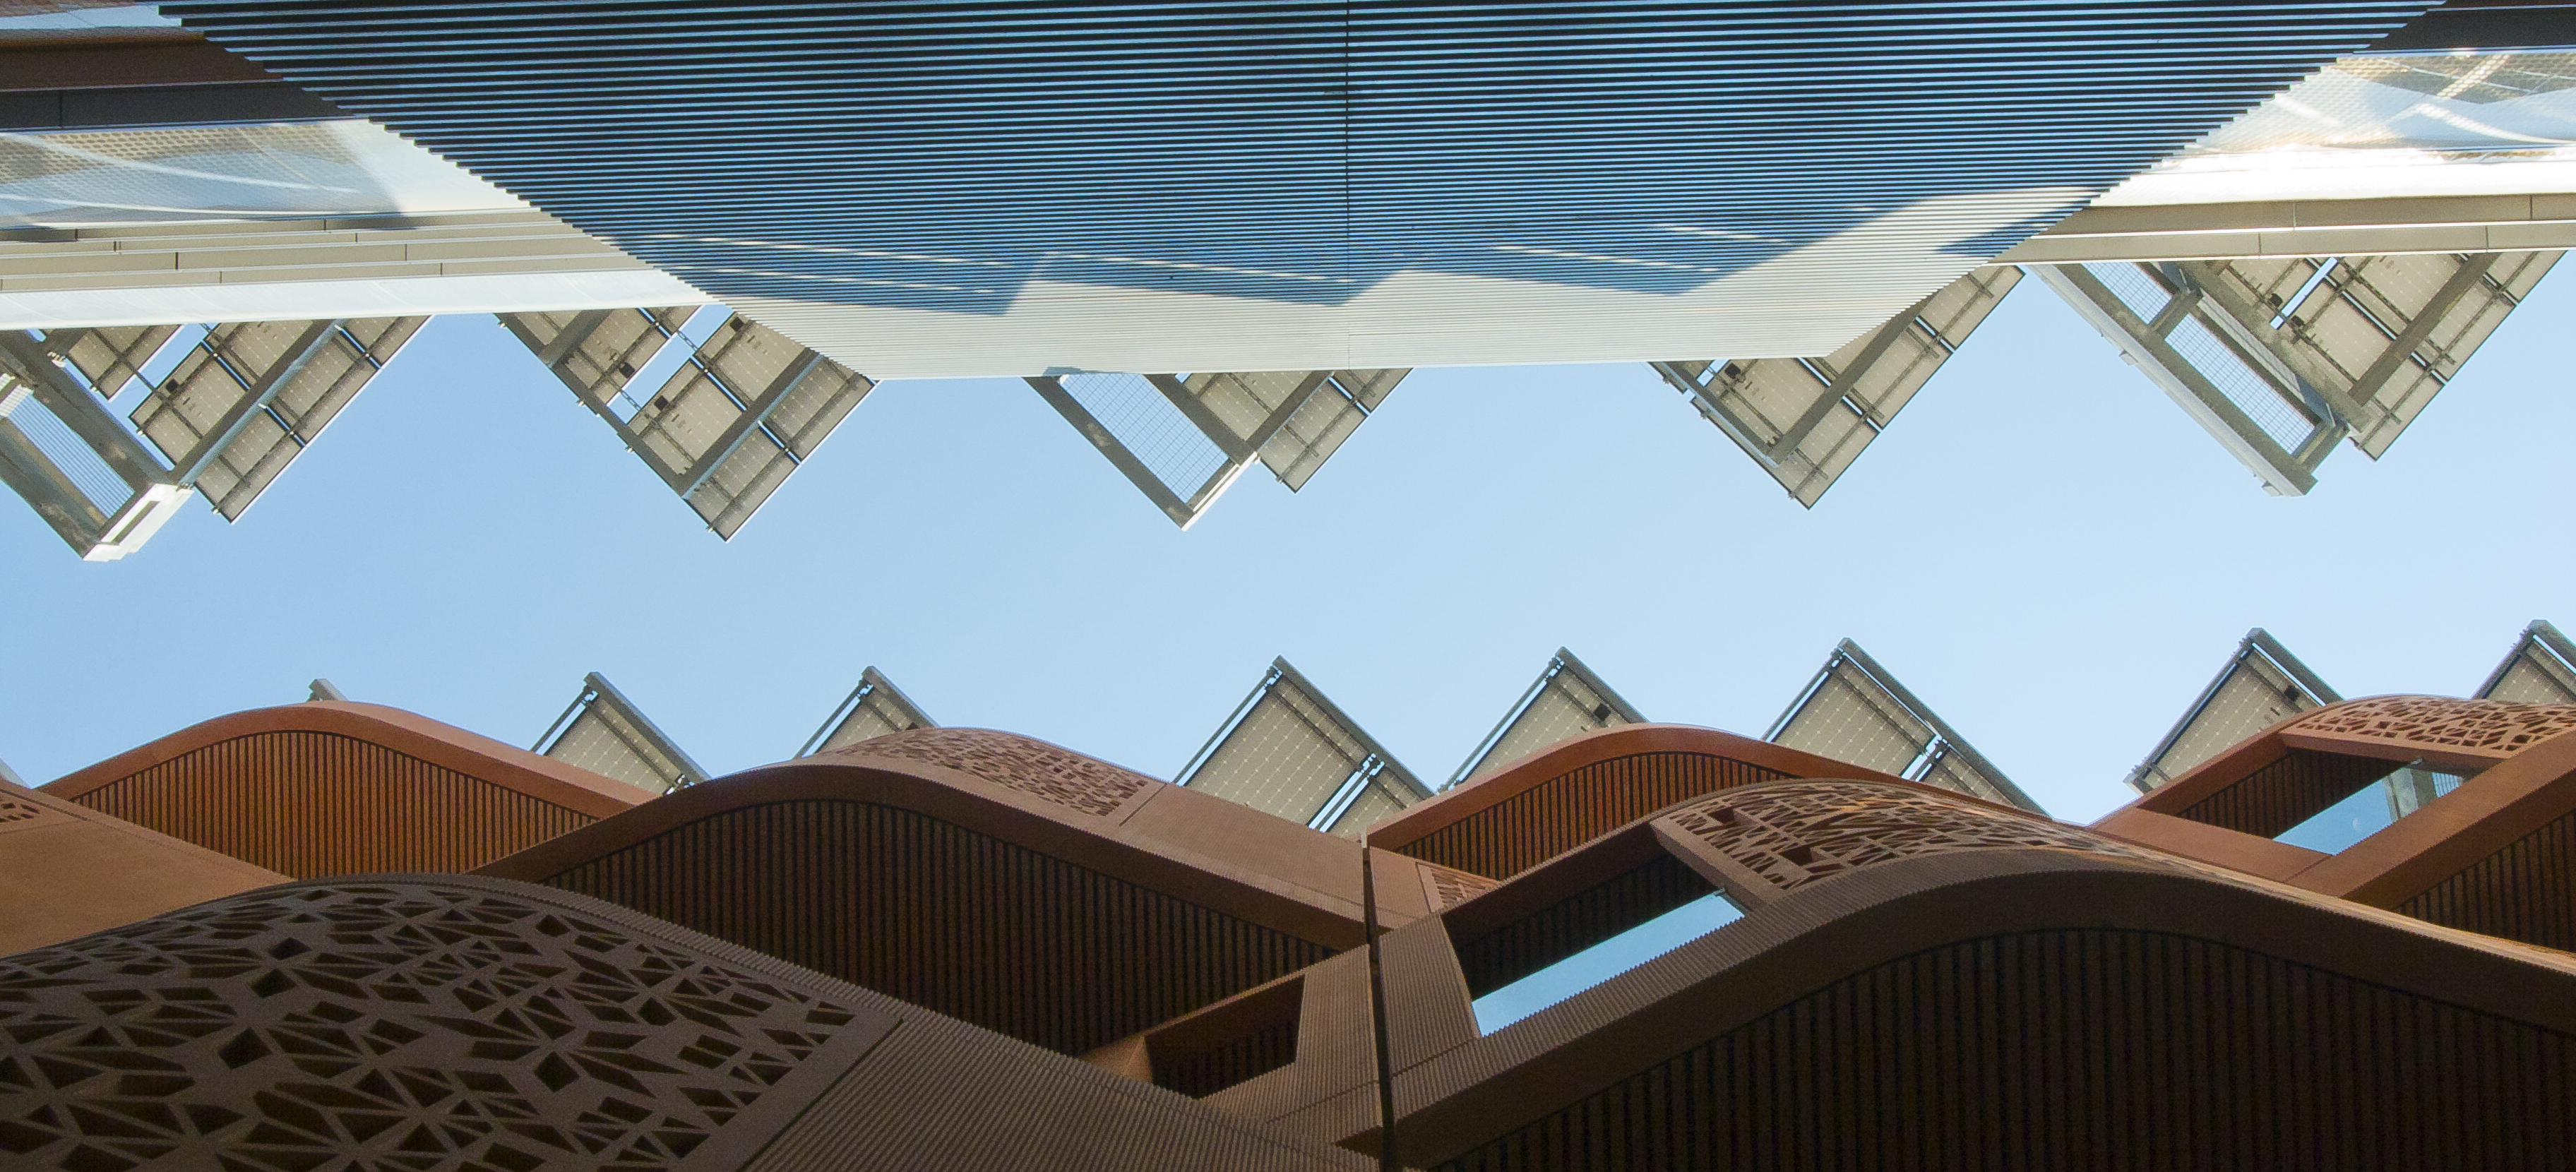 Looking at the sky from Masdar City